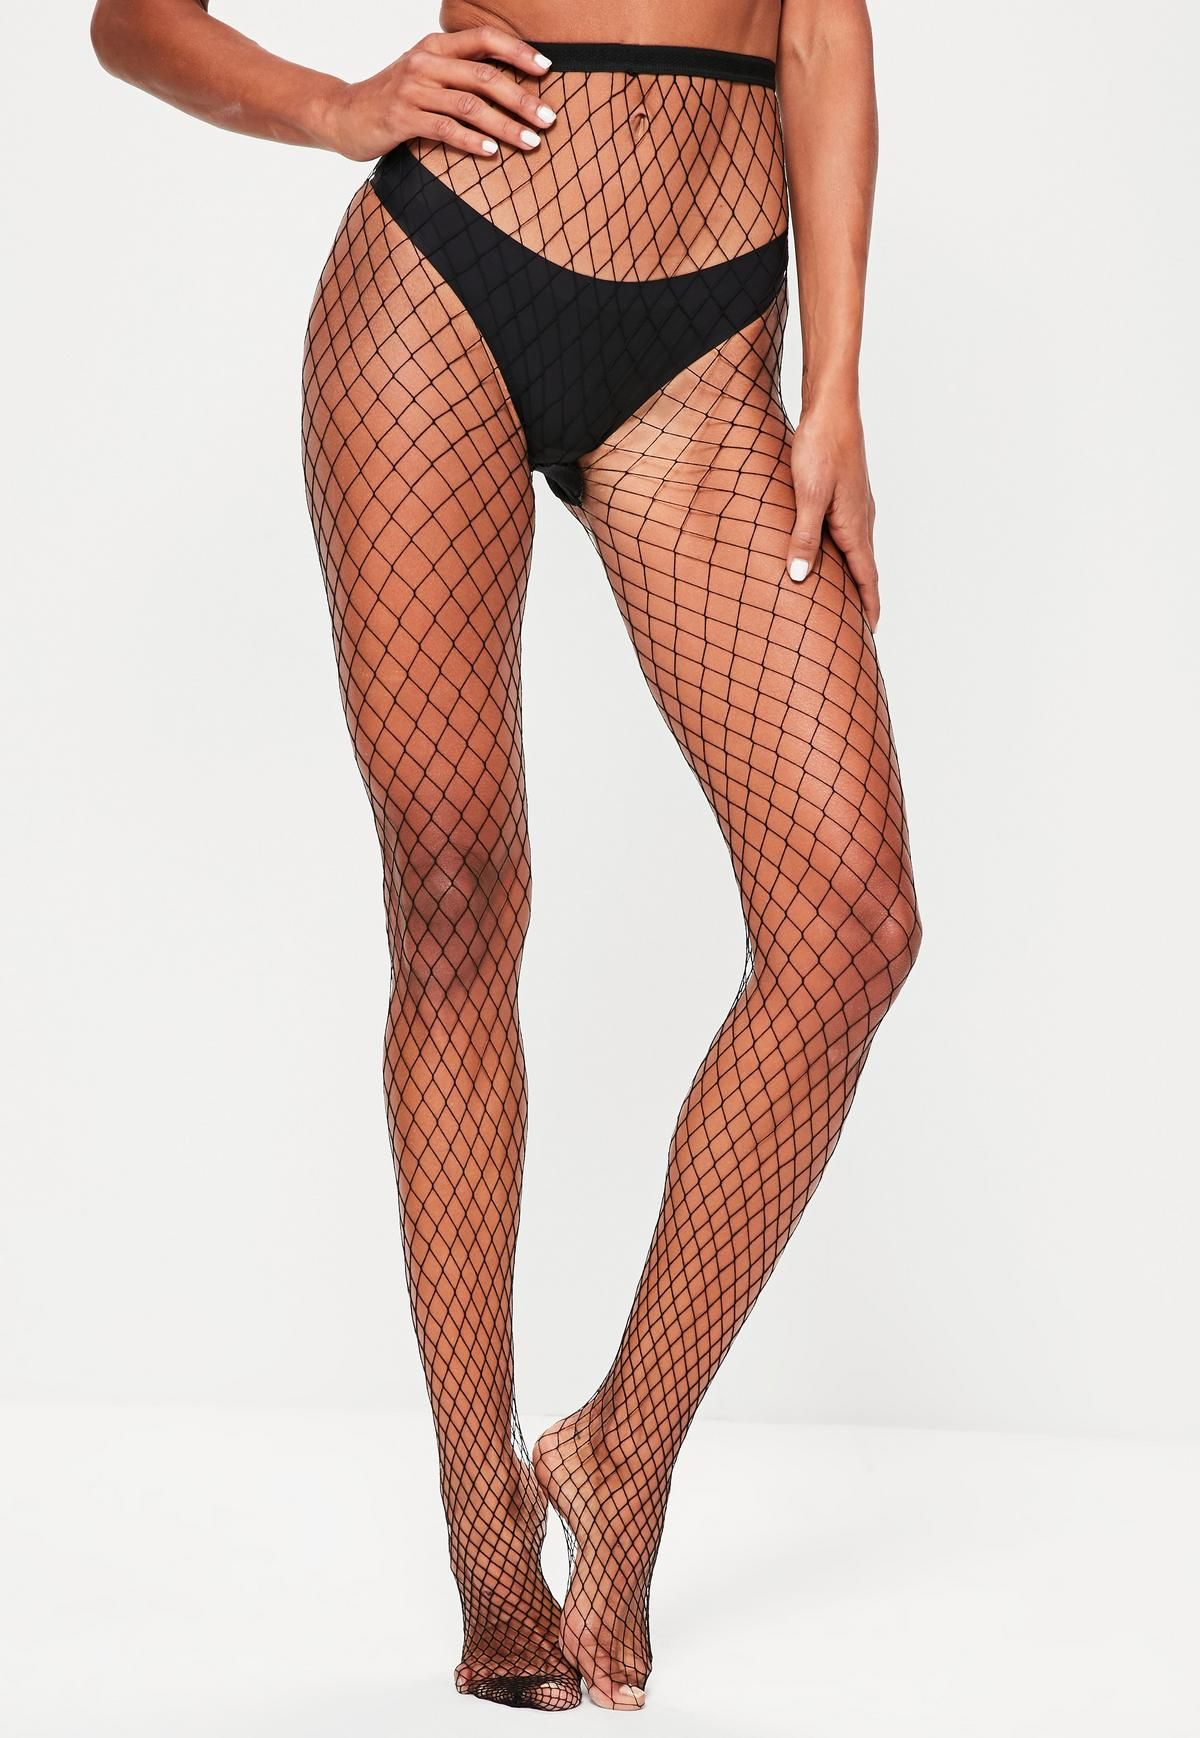 19ff3fa0babd68 Missguided - Black Oversized High Waist Fishnet Tights | Shopping ...